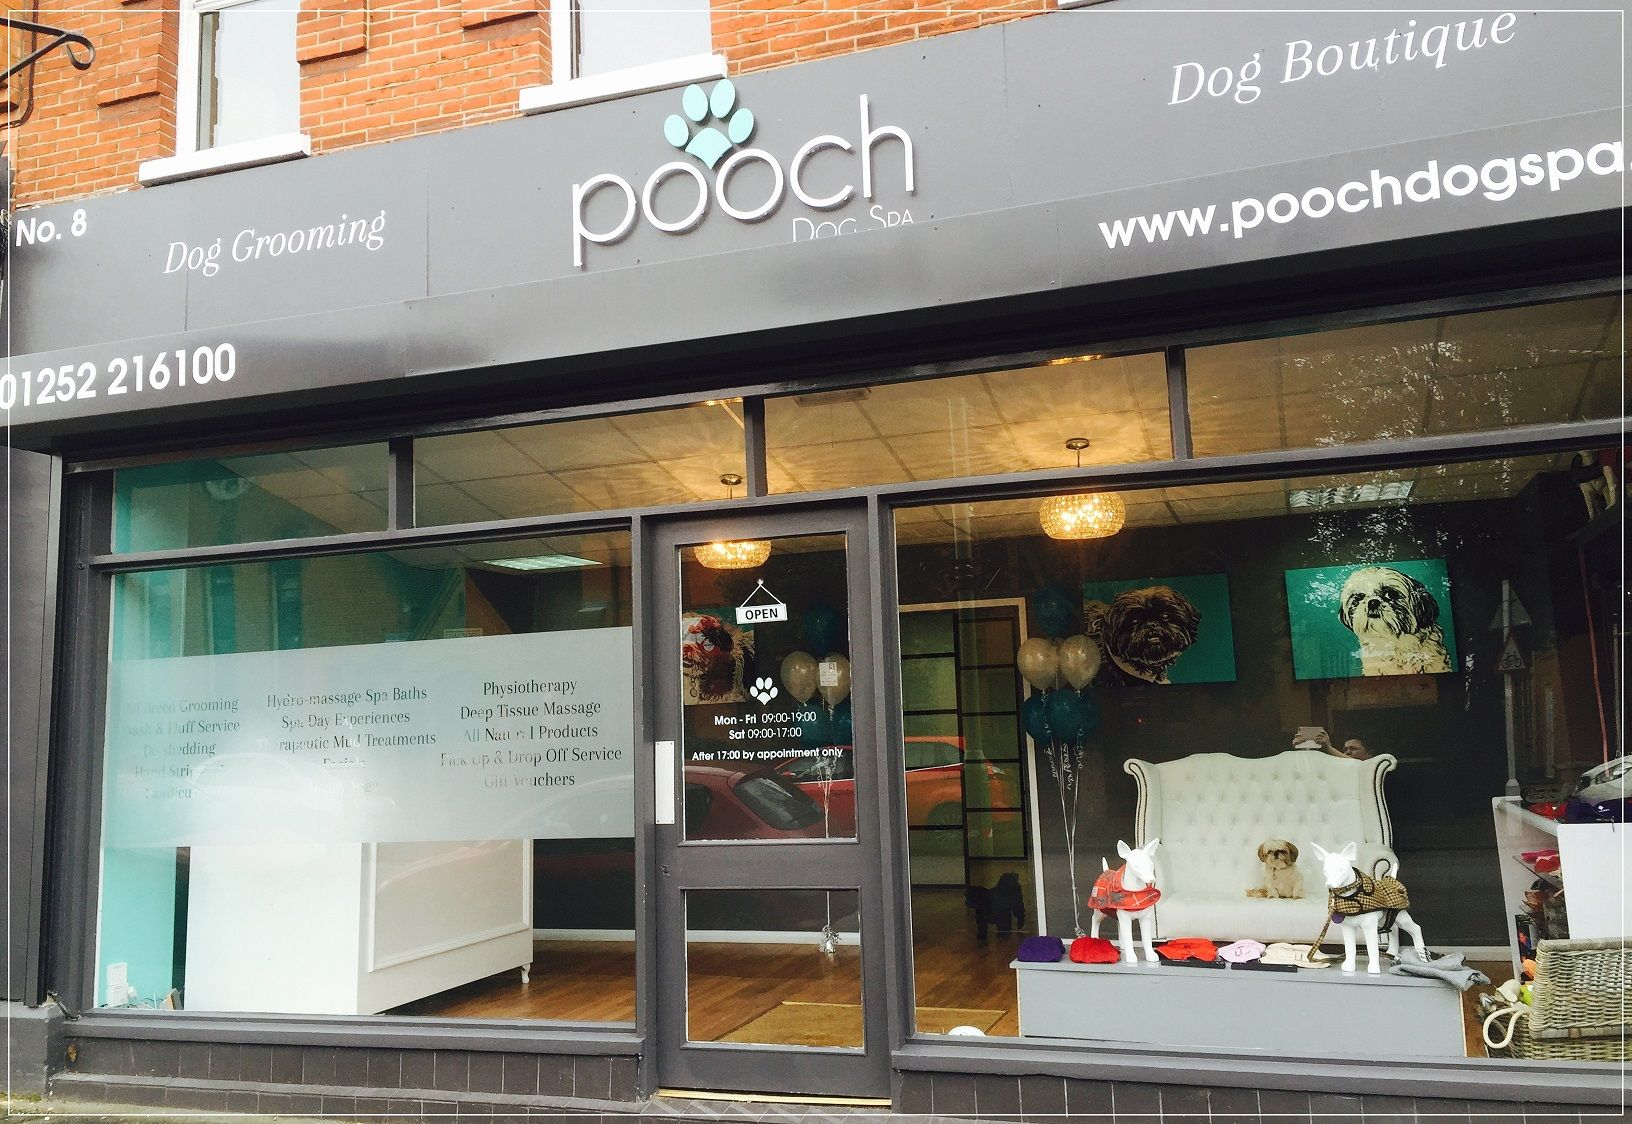 Salon Exterior At Poochdogspa Dog Spa Luxury Dog Kennels Pet Hotel